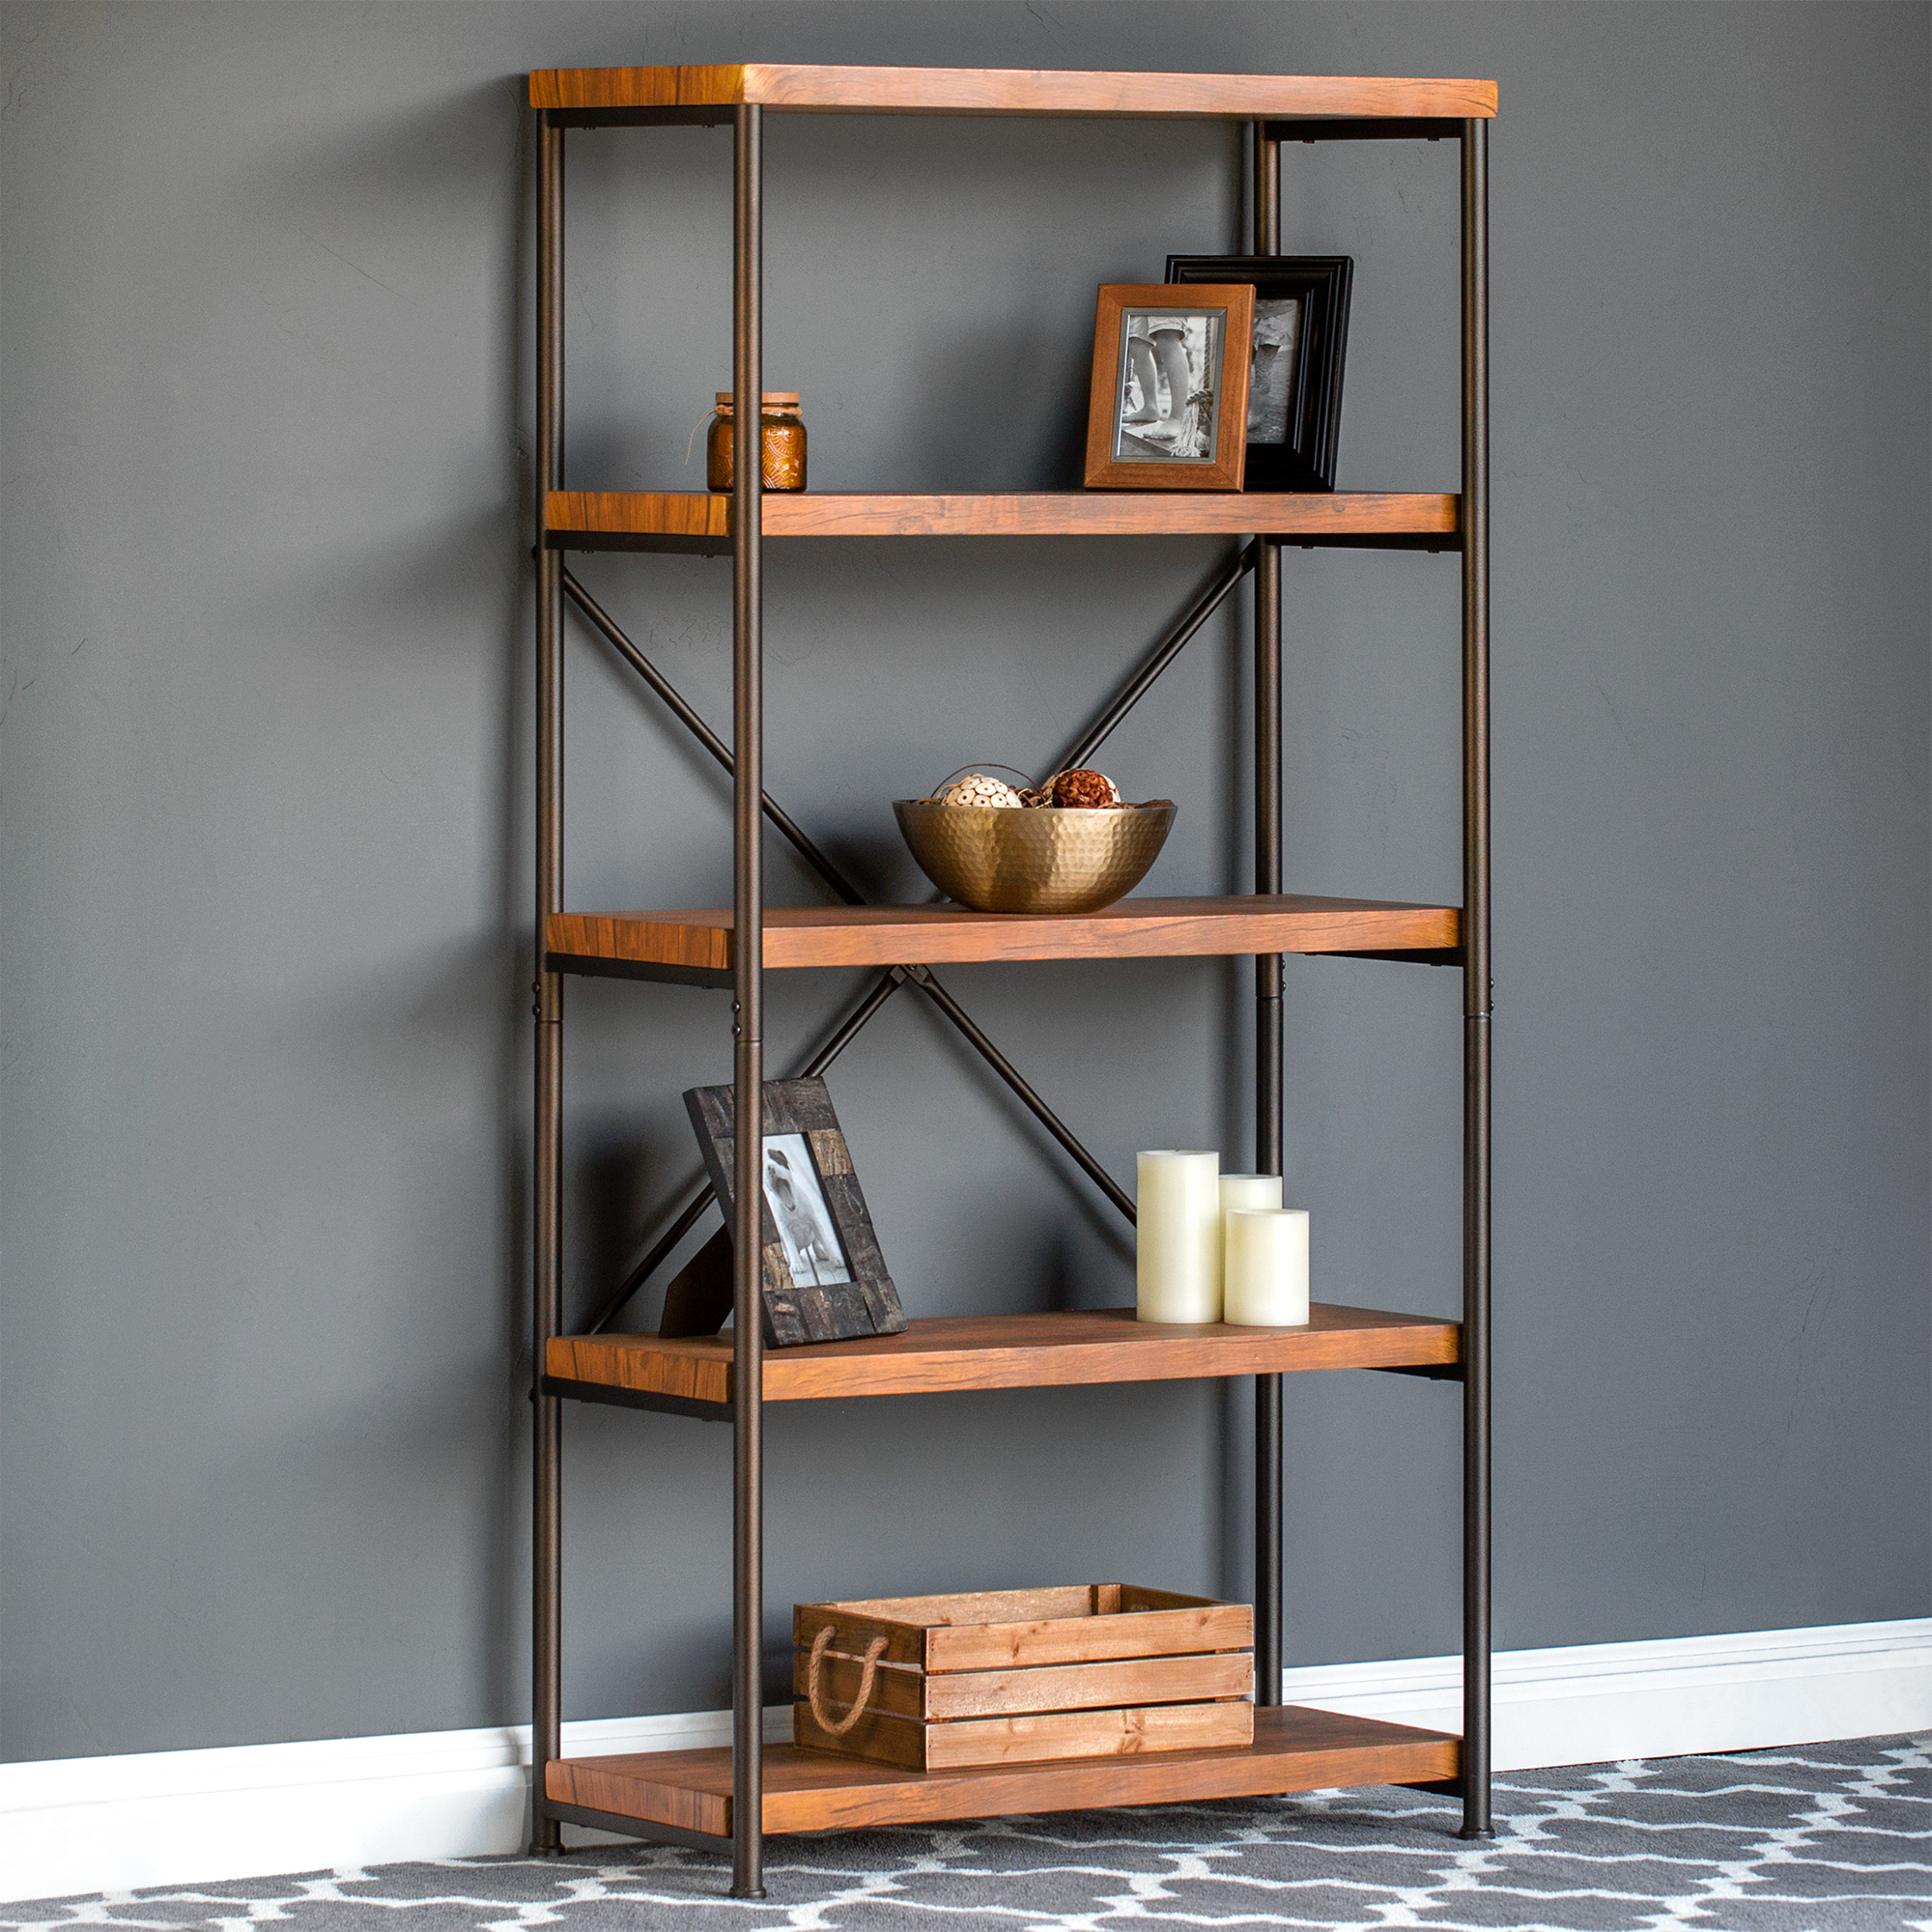 Beau Best Choice Products 4 Tier Rustic Industrial Bookshelf Display Decor  Accent For Living Room, Bedroom, Office With Metal Frame, Wood Shelves,  Brown